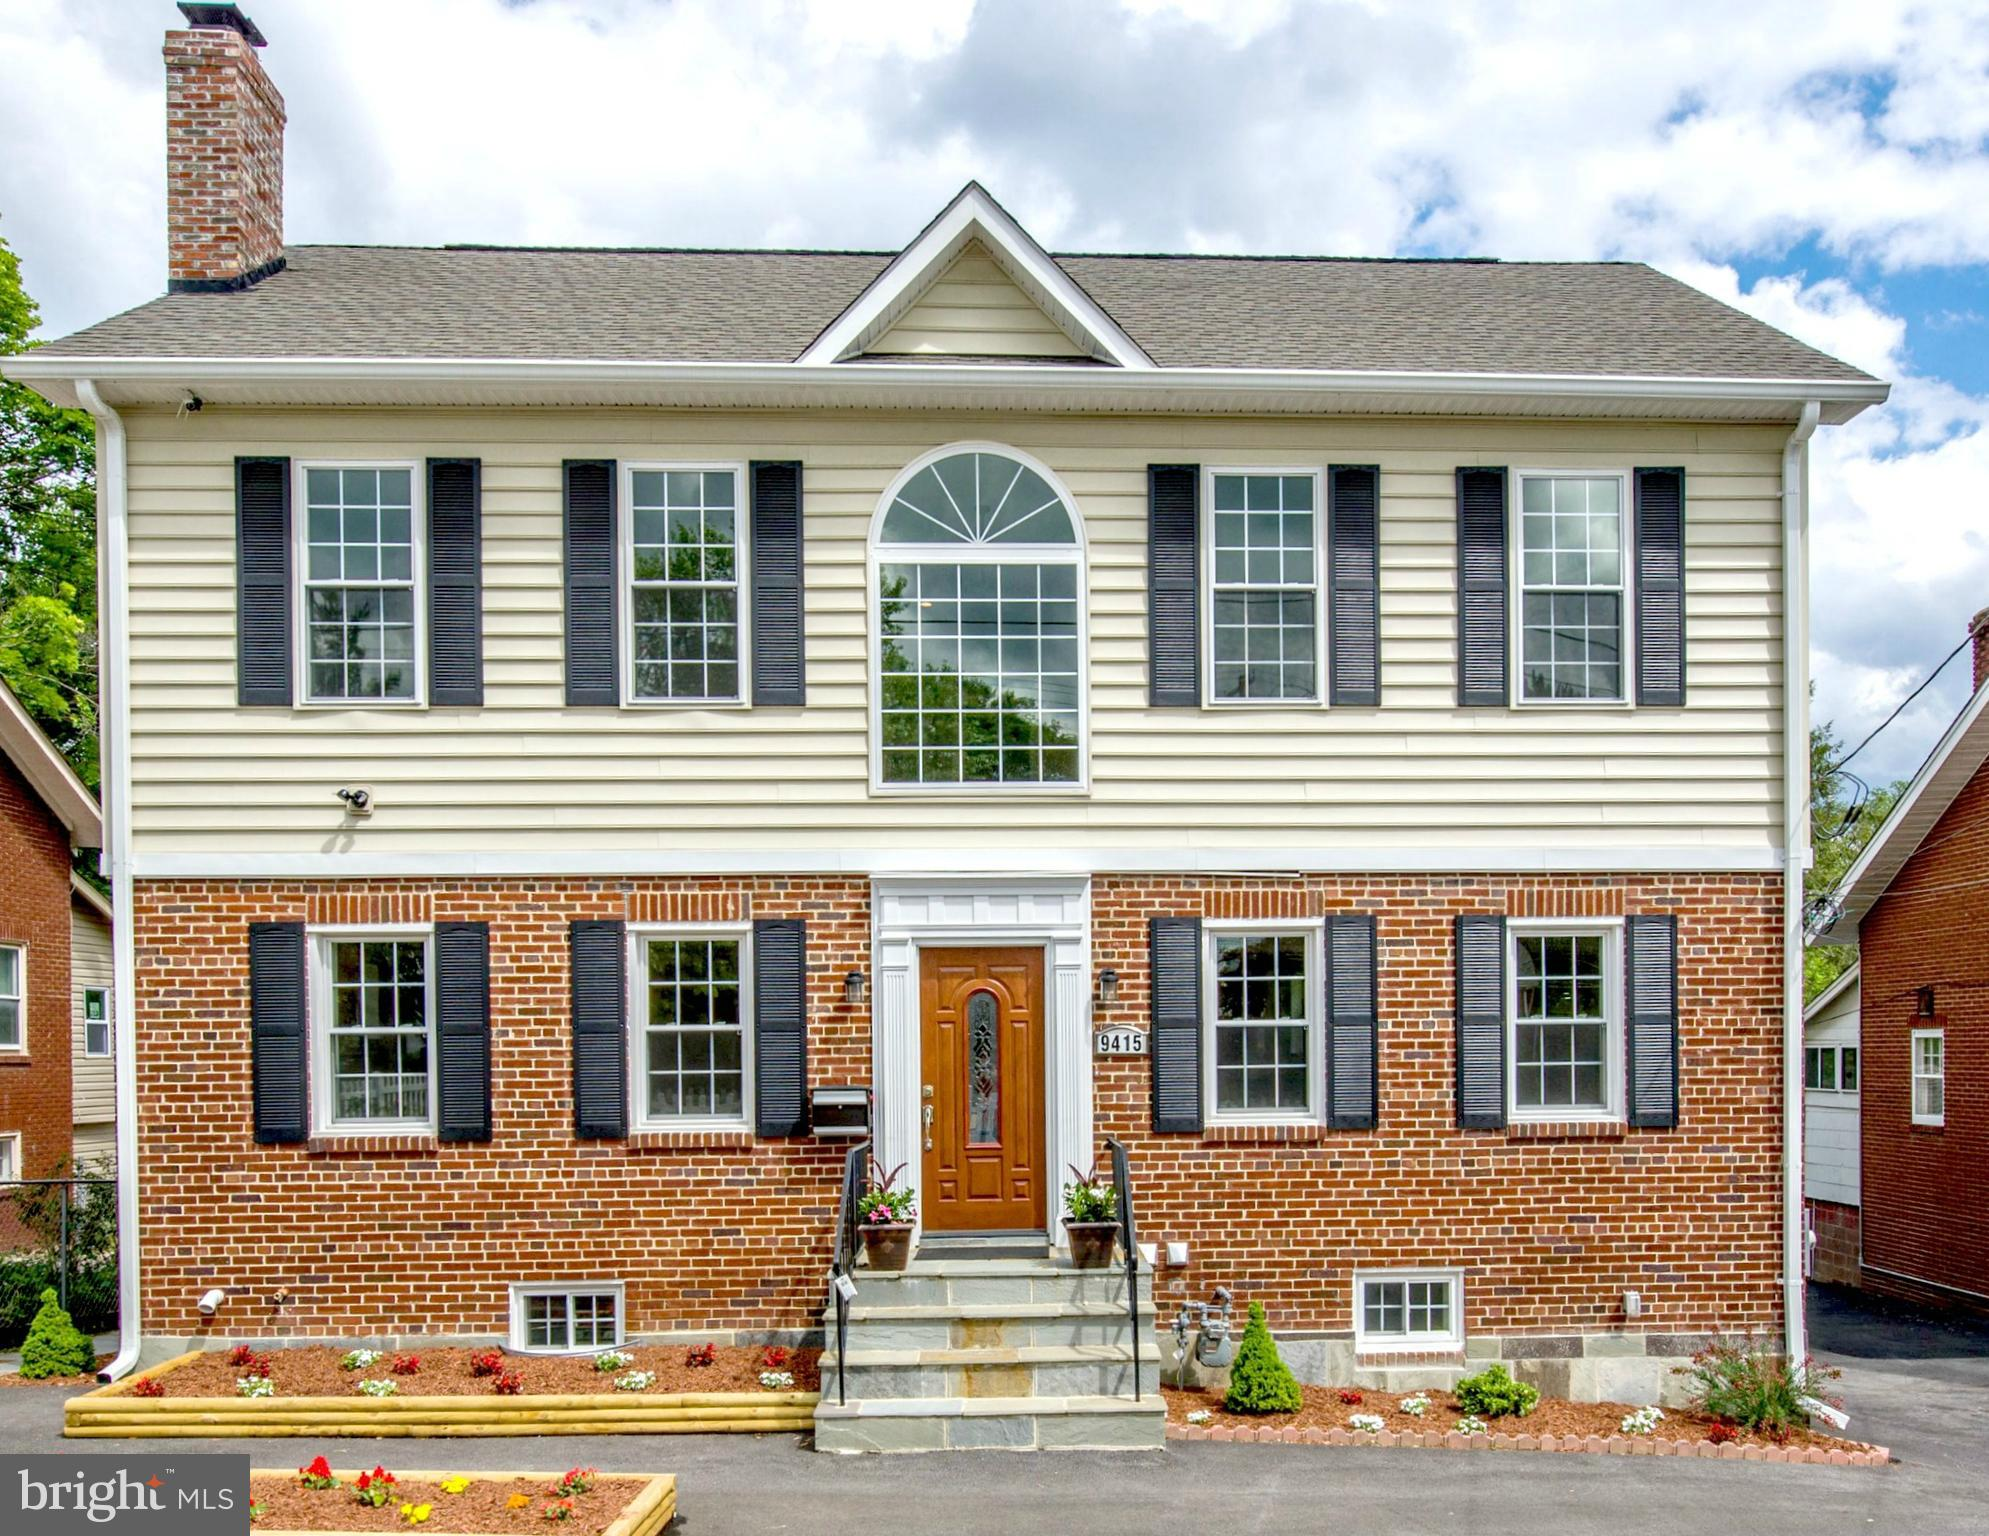 9415 COLESVILLE ROAD, SILVER SPRING, MD 20901